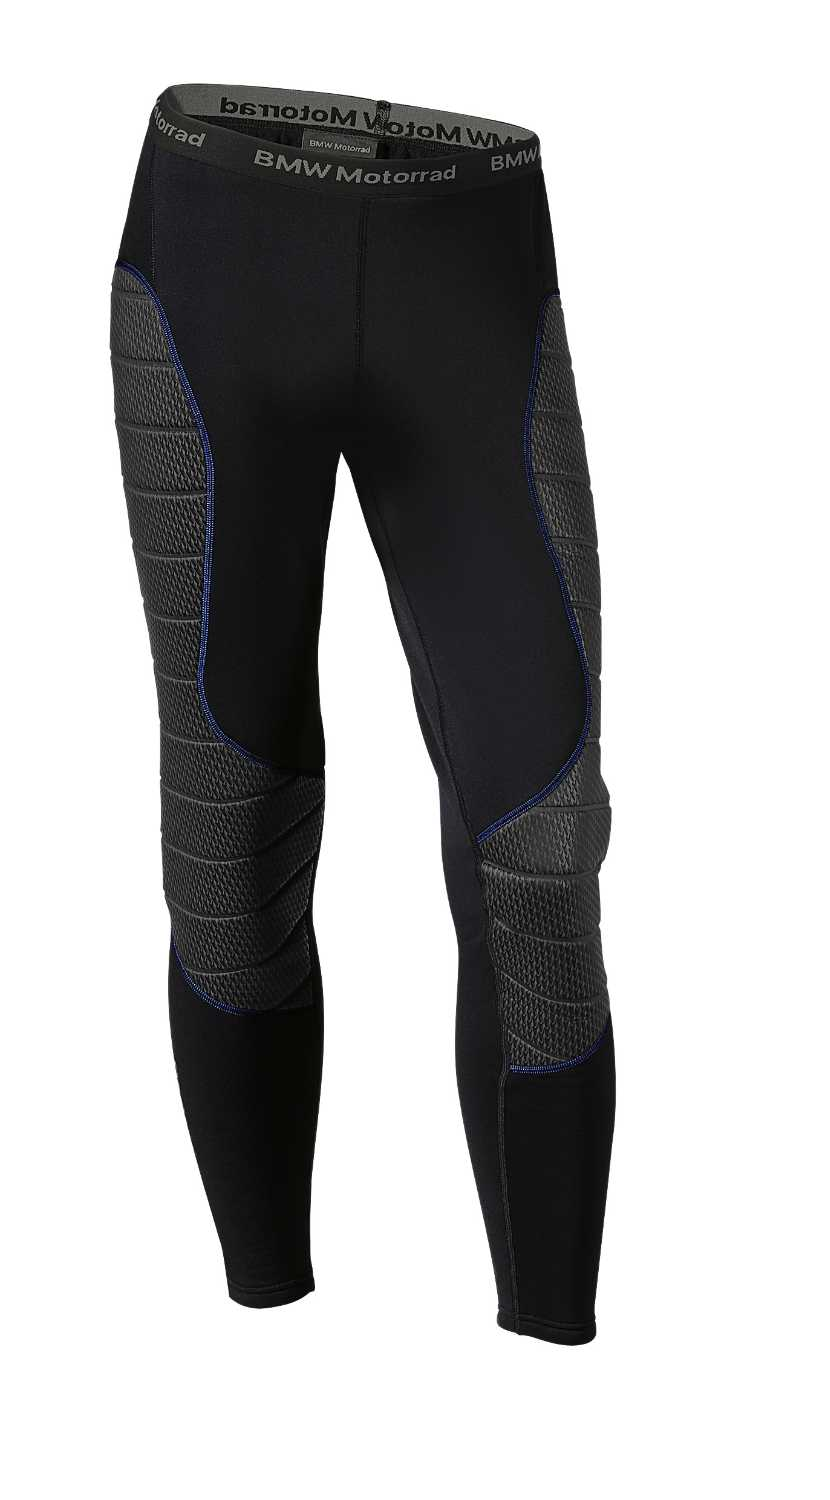 Термоштаны BMW Motorrad PCM functional pants Unisex, Black